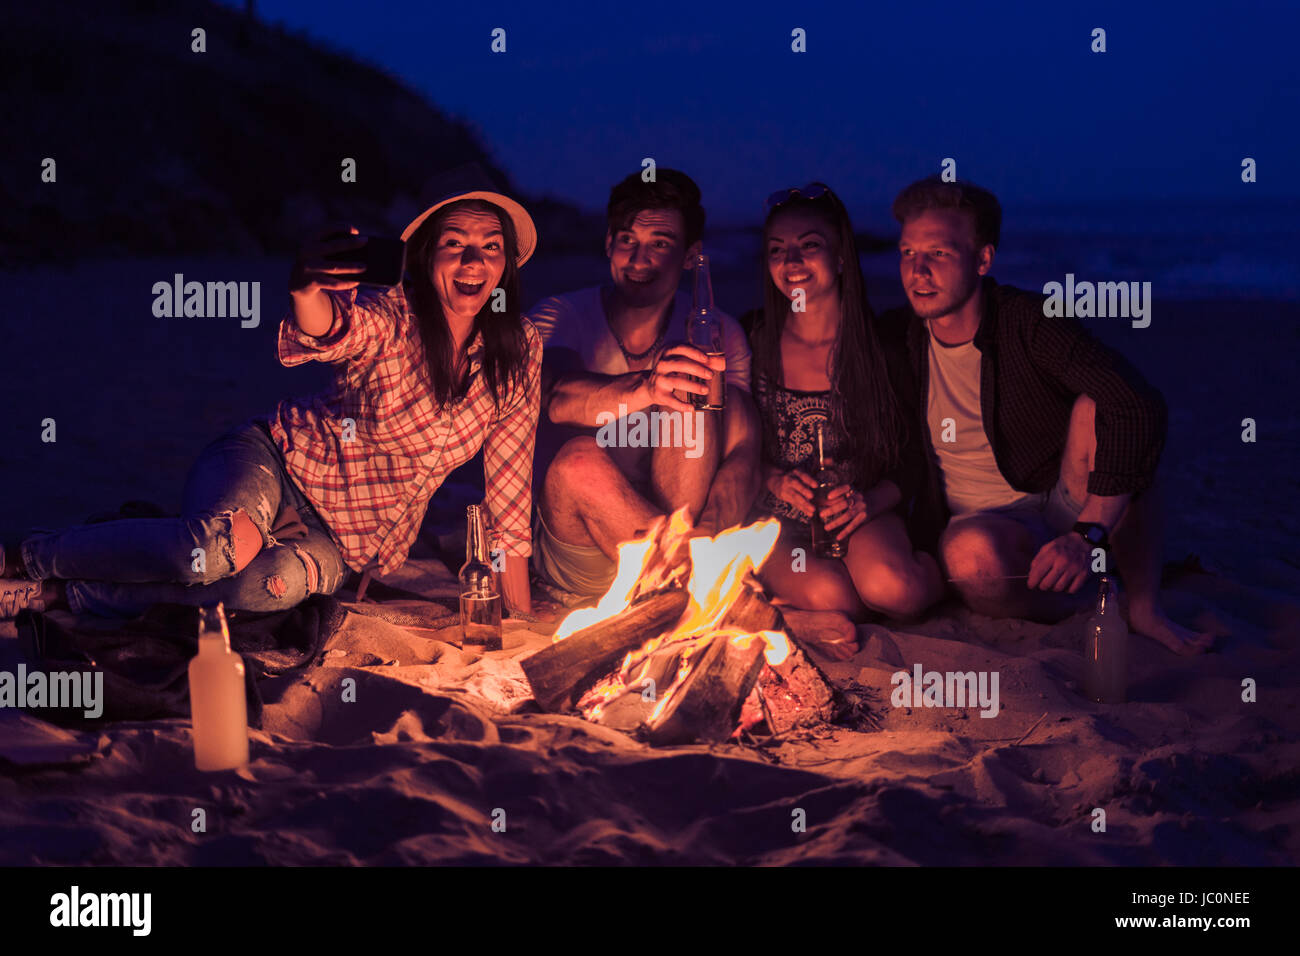 Riends assis sur la plage et prendre des selfies Photo Stock